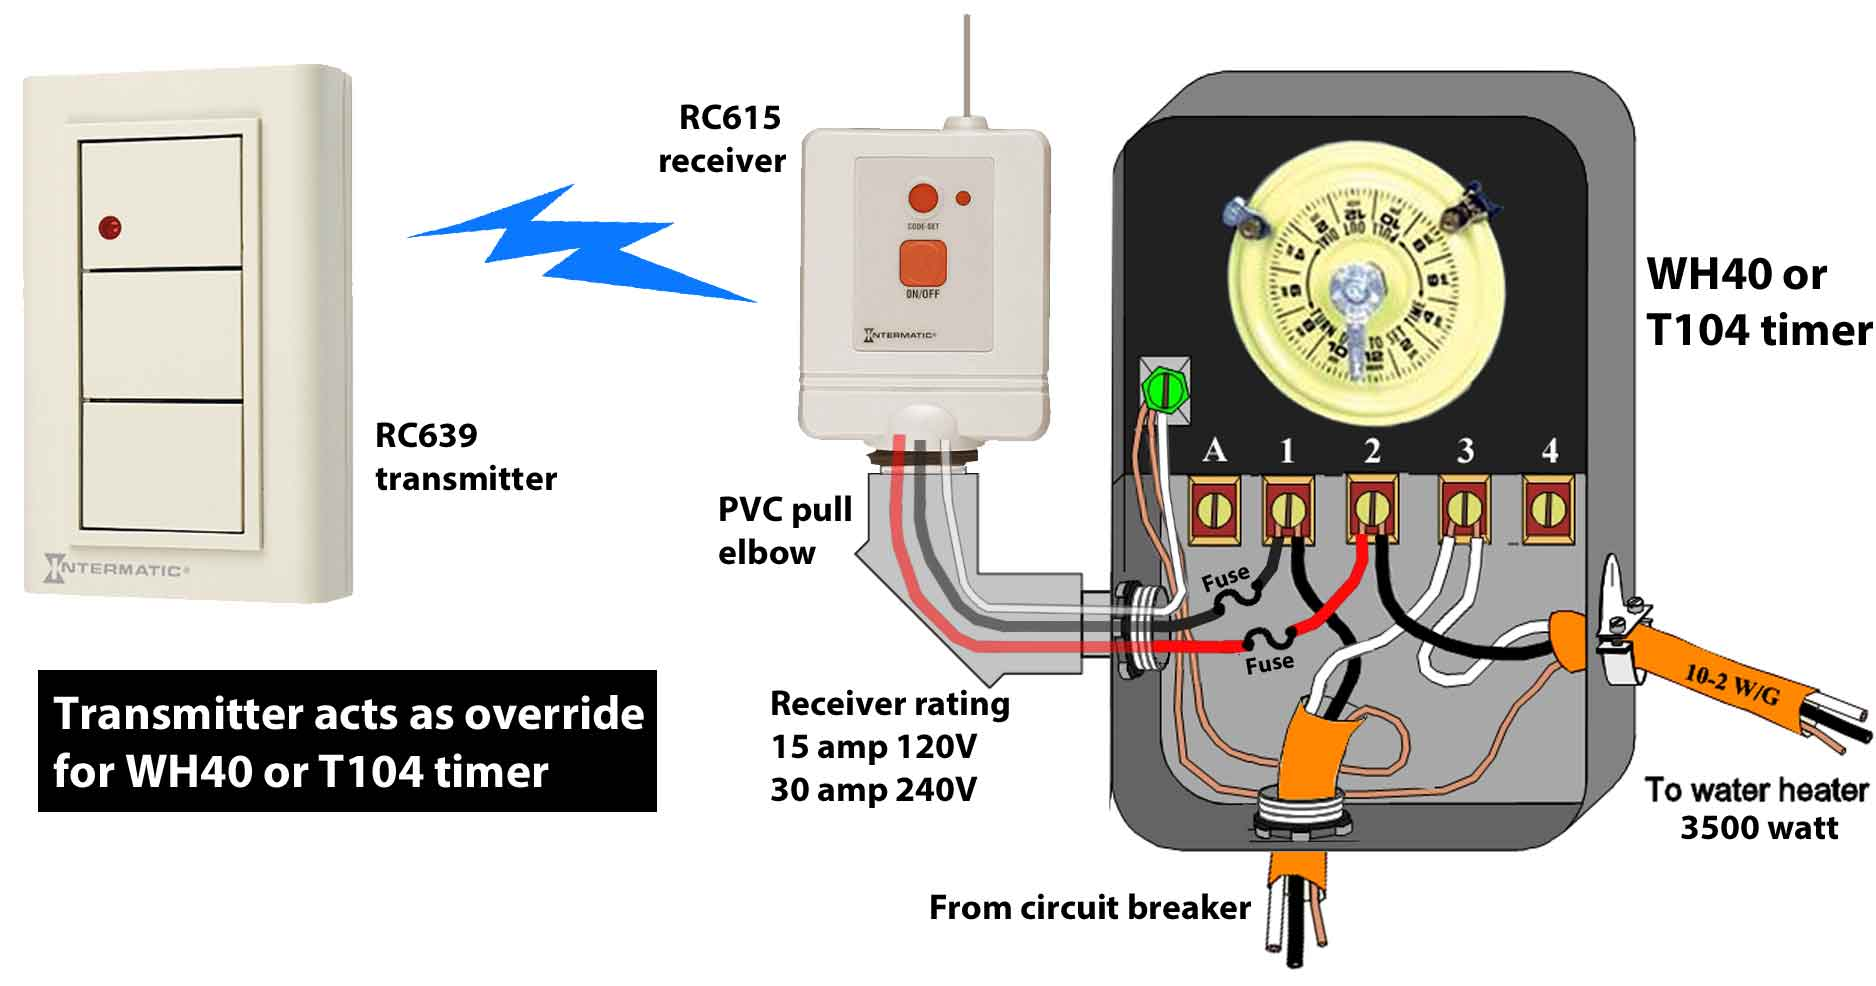 Digital Timer Wiring Diagram Everything About Razor Sport Mod Electric Scooter How To Wire Wh40 Water Heater Rh Waterheatertimer Org Frontier Defiant